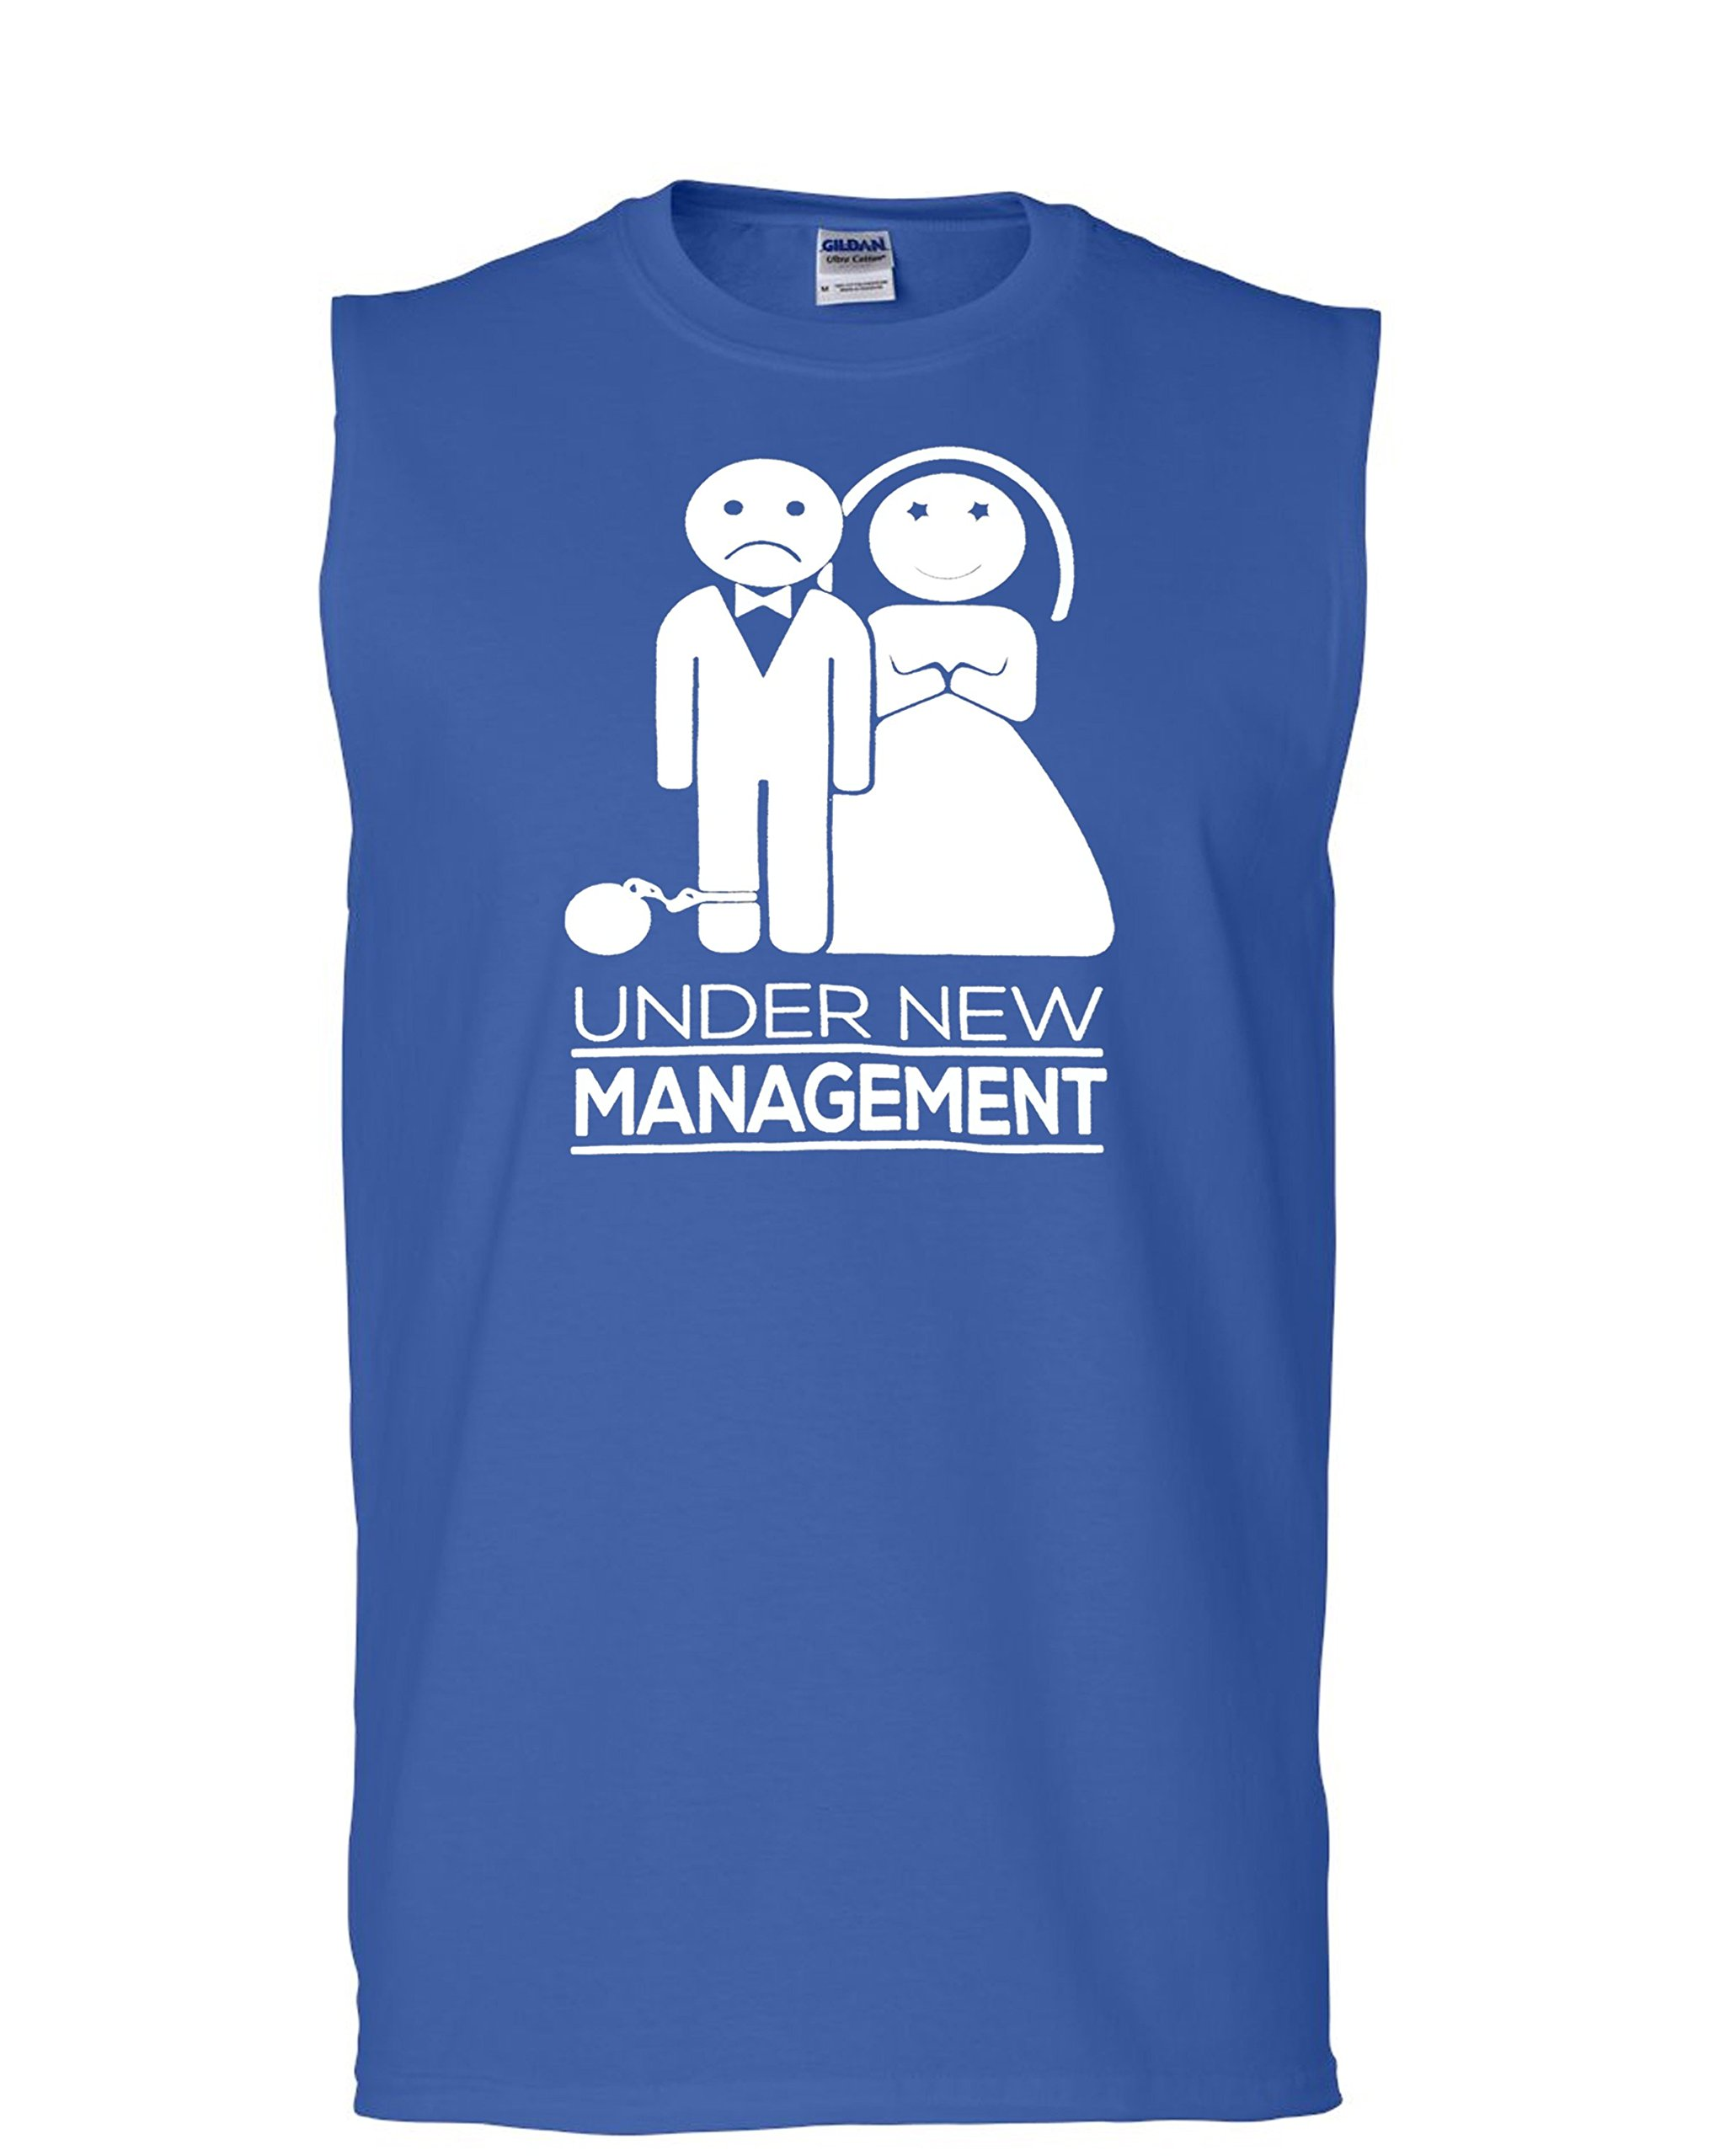 Hot Ass Tees Adult Unisex Under New Managment Wedding Couples Funny Novelty Parody Sleeveless T-Shirt Royal Blue XX-Large